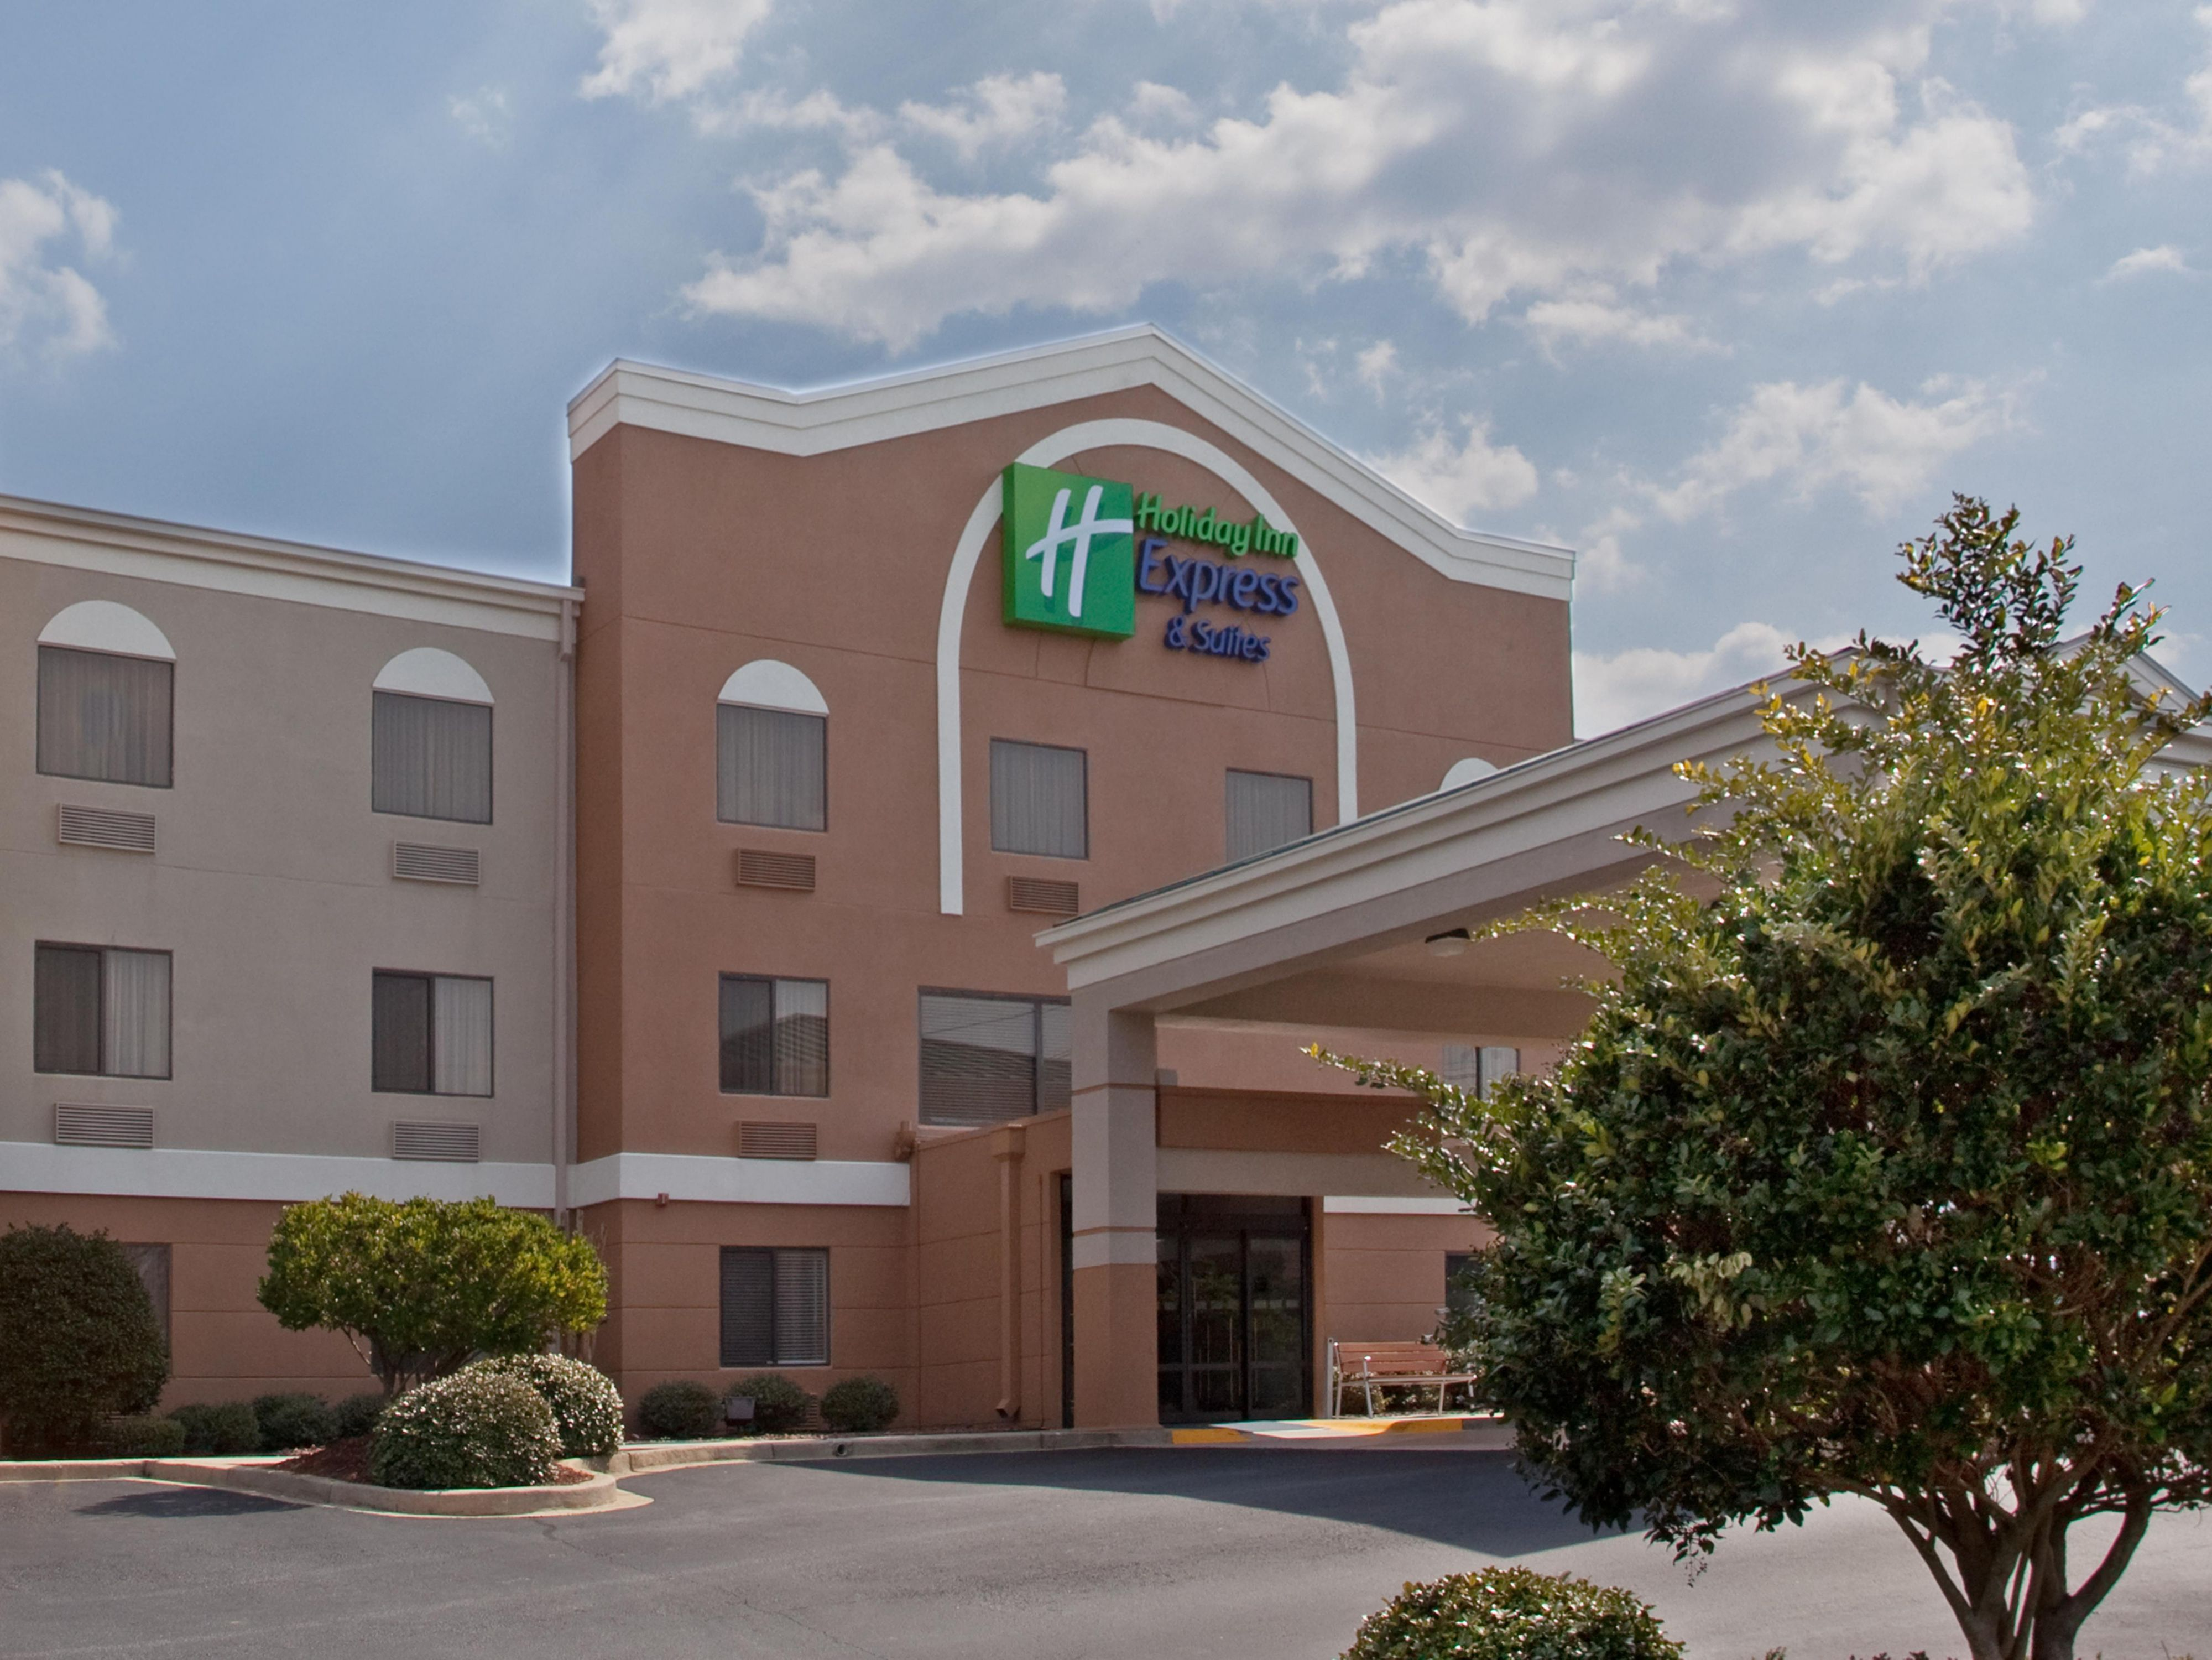 Holiday Inn Express & Suites Greenville Airport Hotel